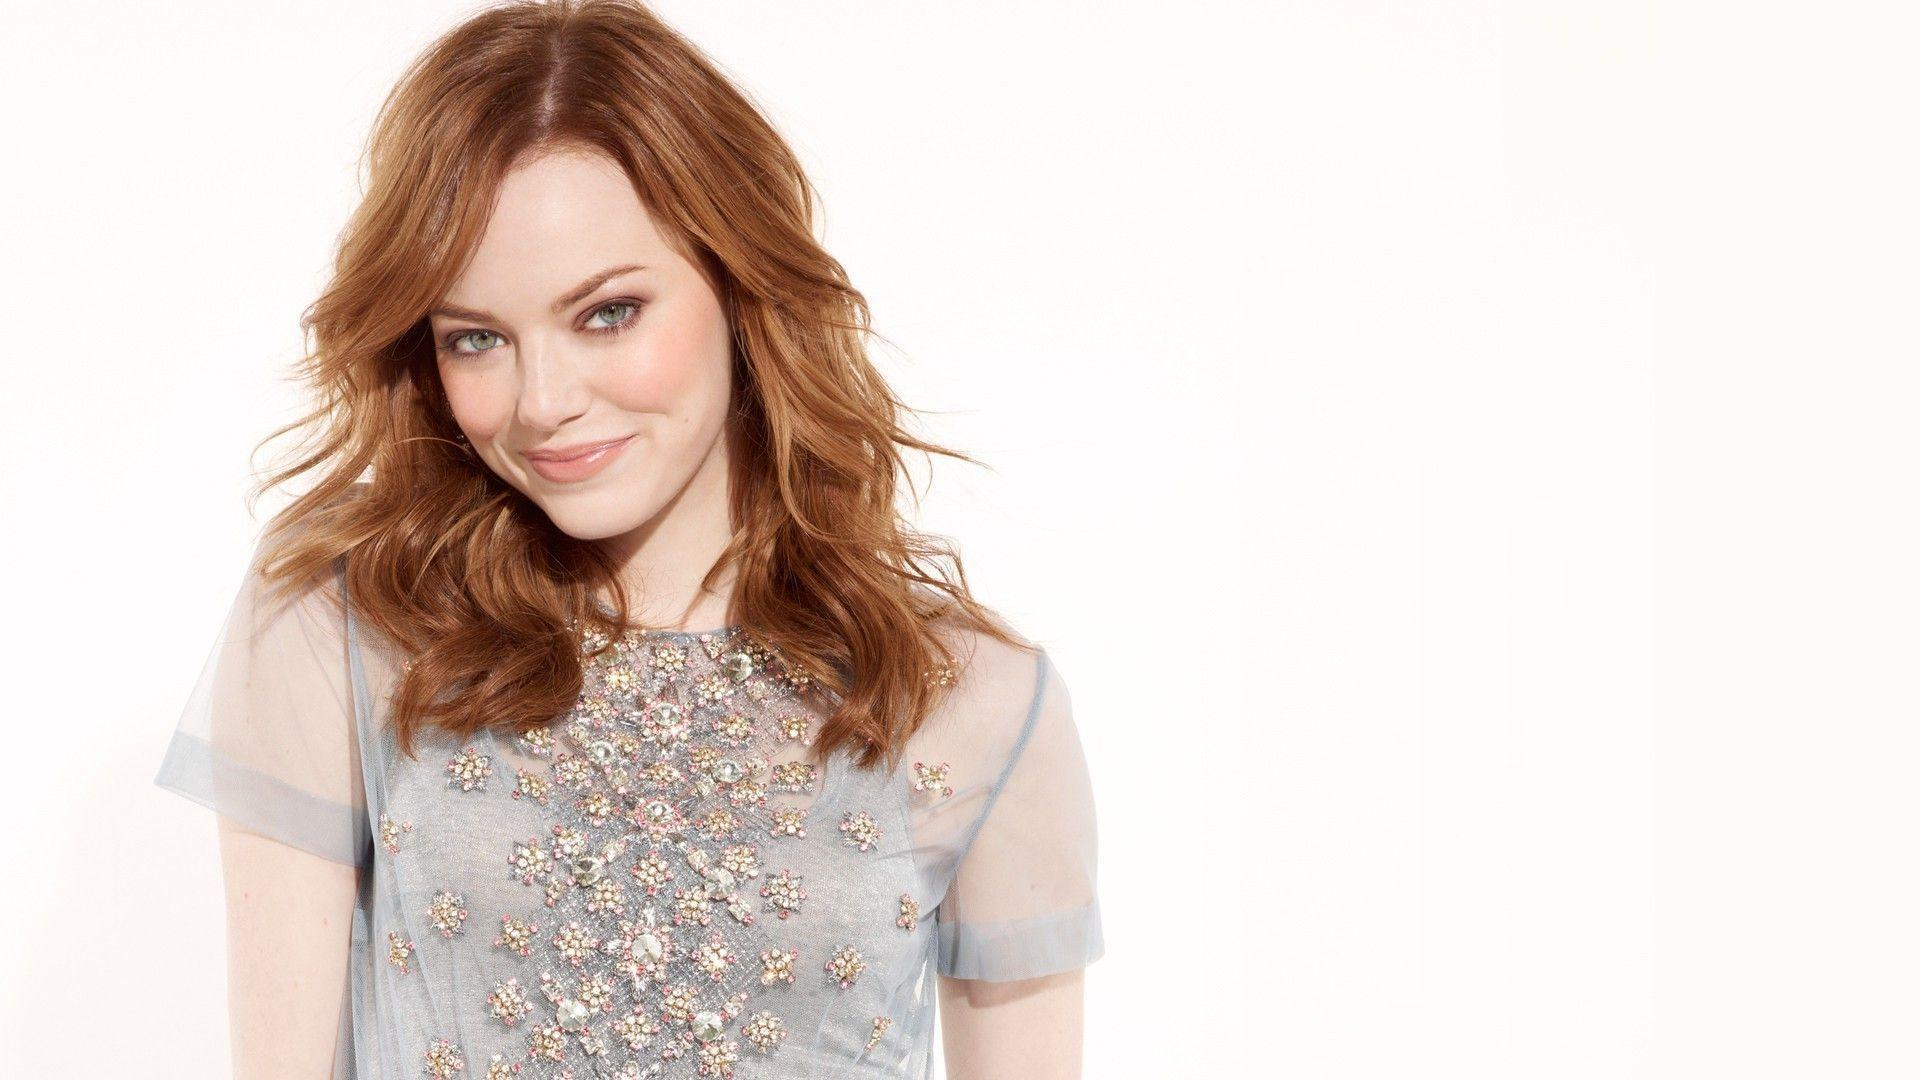 Emma Stone Wallpapers HD Free Download